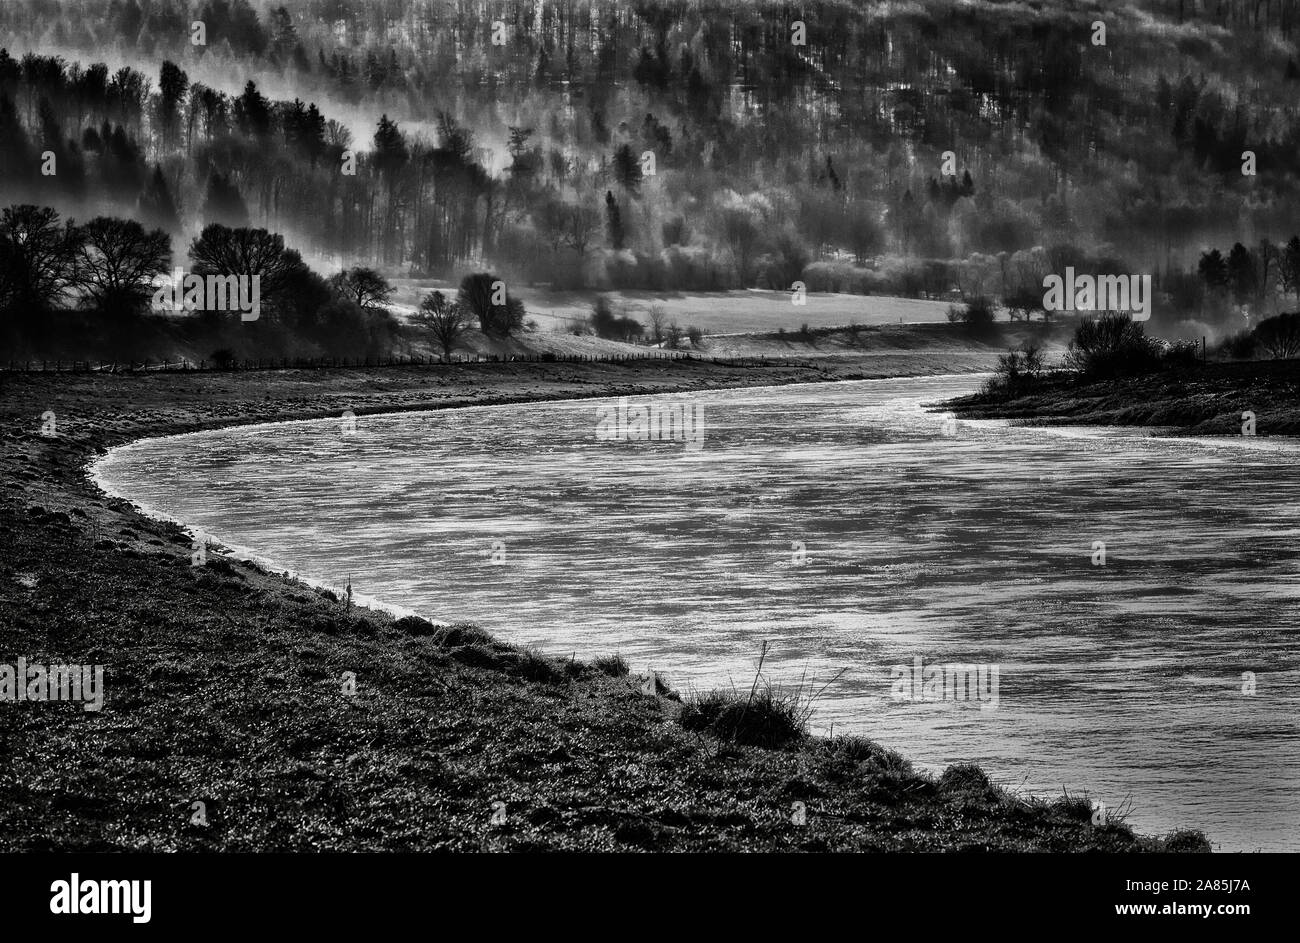 River Weser in winter, near Oberweser, Gewissenruh, Weser Uplands, Weserbergland, Hesse, Germany Stock Photo